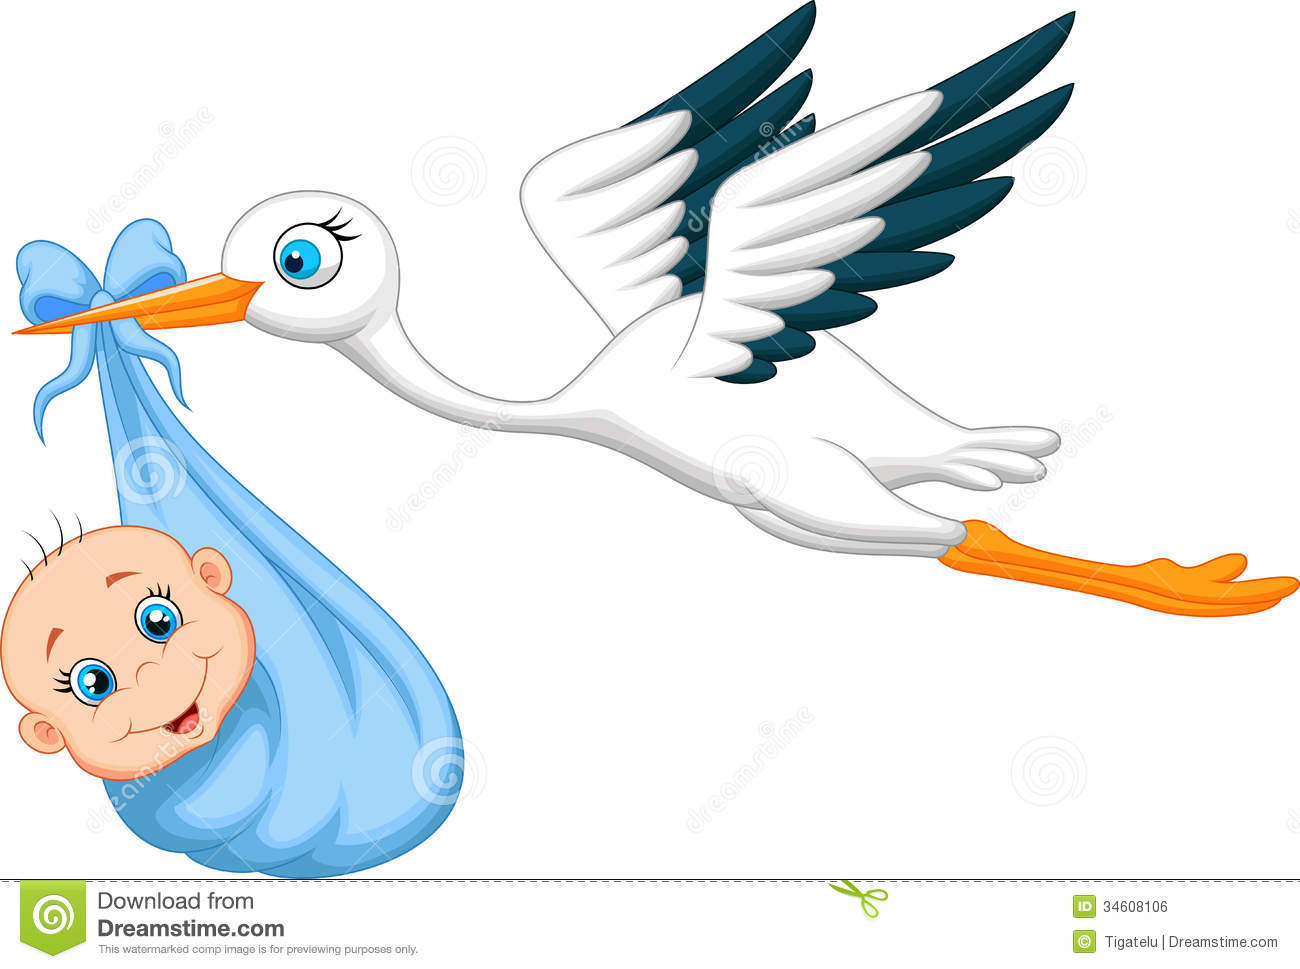 Storch Clipart